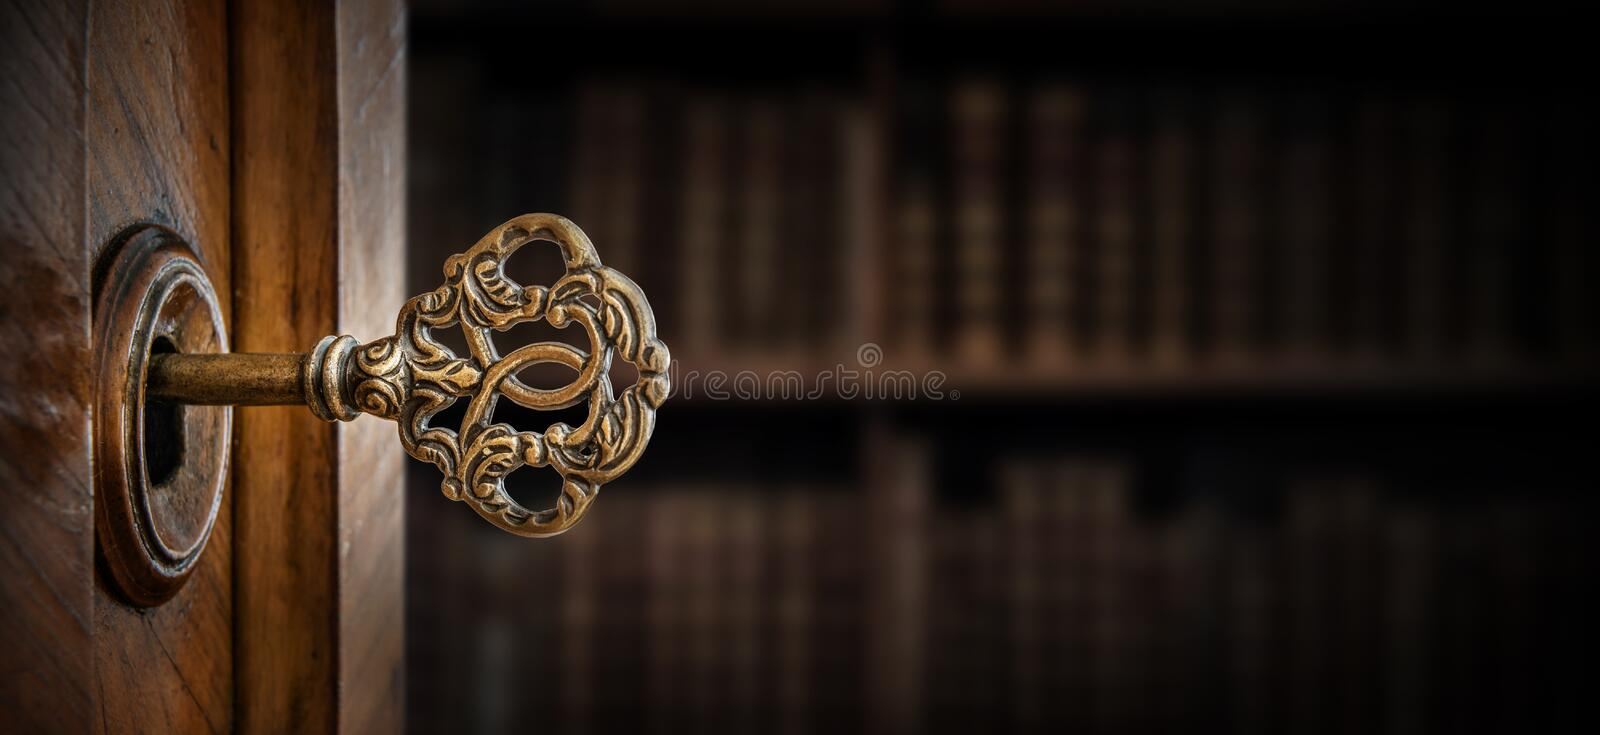 Old key in keyhole. Retro style. Concept and Idea for History, business, security background. Write Your Text Here. Old key in keyhole, macro shot. Retro style royalty free stock images